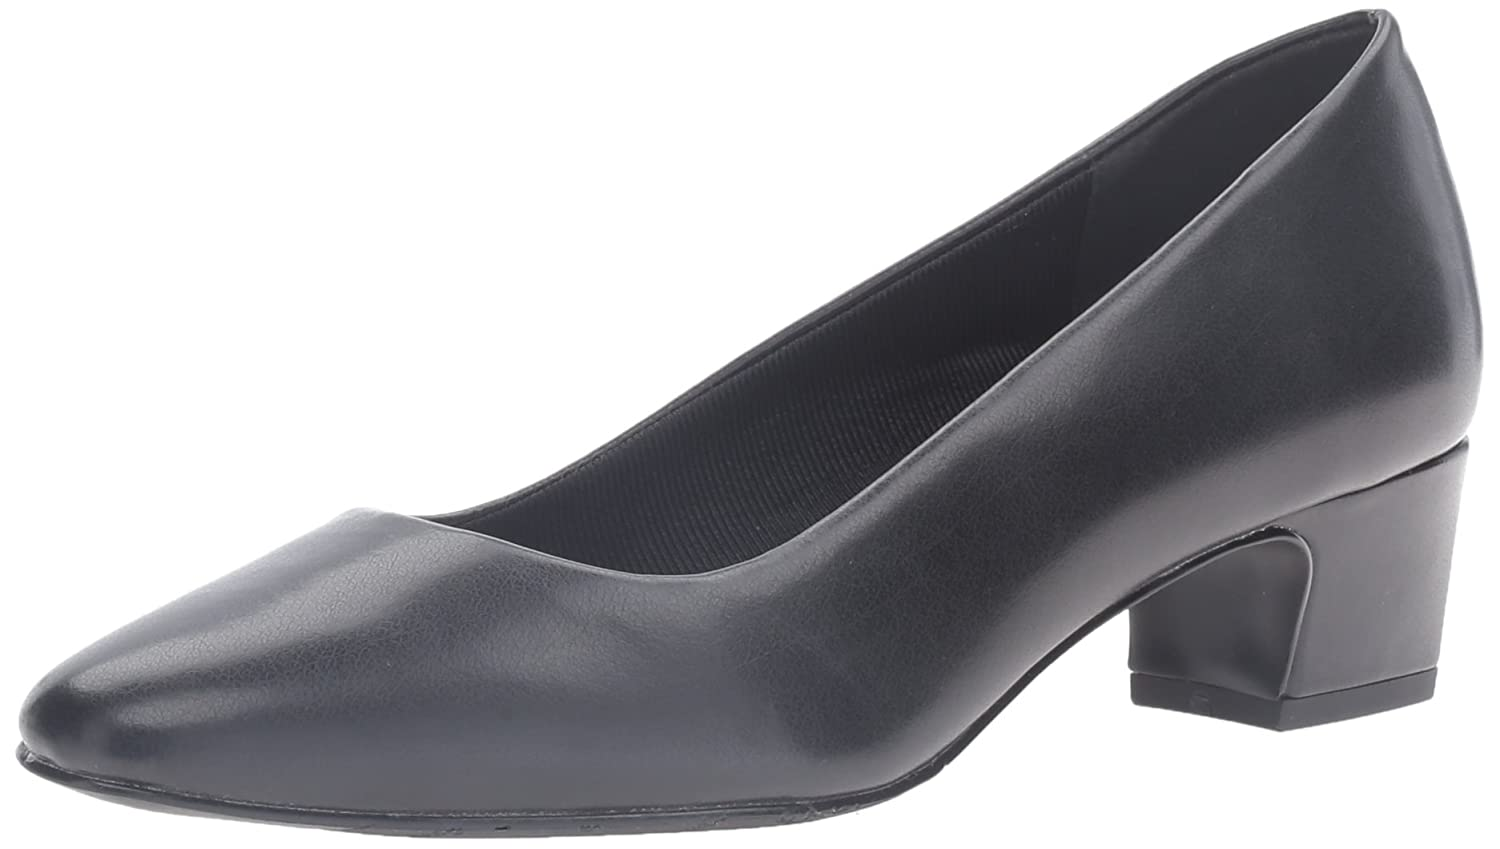 Easy Street Women's Prim Dress Pump B01HN7821G 6.5 B(M) US|Black